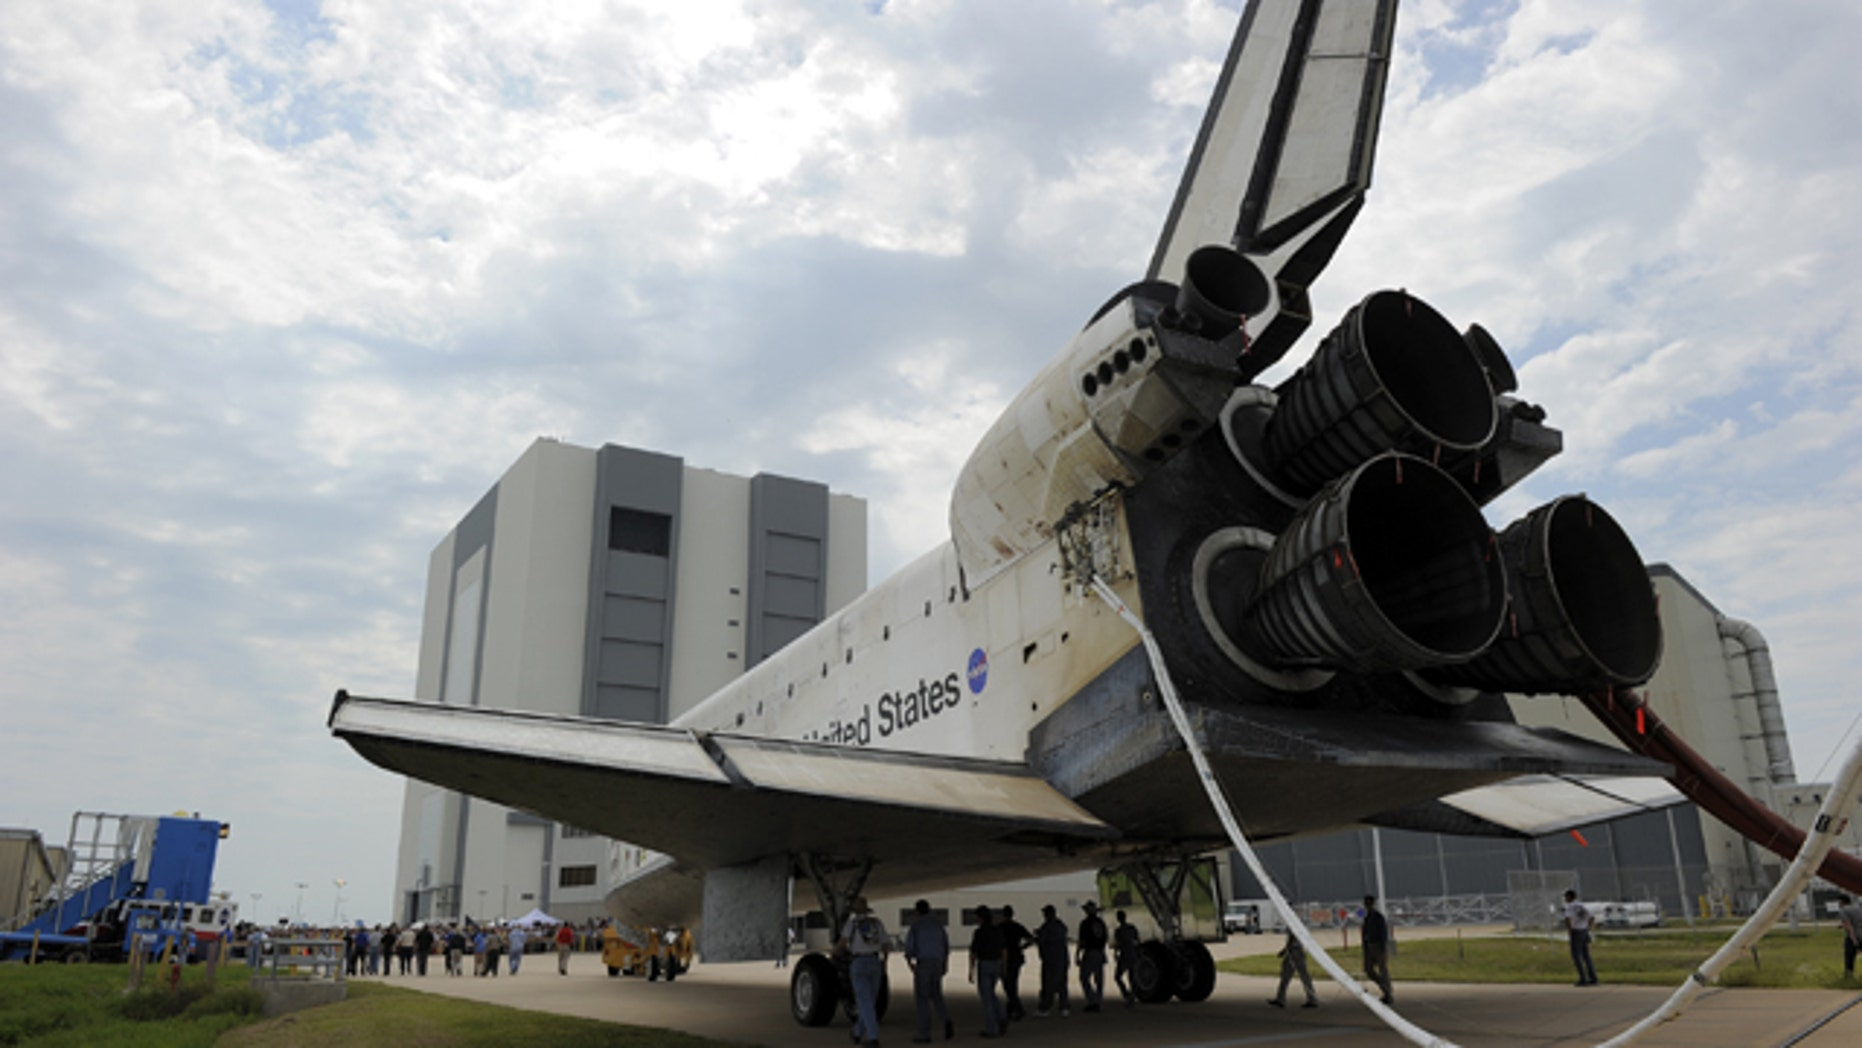 Space shuttle Atlantis is slowly towed from the Shuttle Landing Facility to an orbiter processing facility at NASA's Kennedy Space Center in Florida for the last time. Atlantis' final return from space at 5:57 a.m. EDT secured the space shuttle fleet's place in history and brought a close to the America's Space Shuttle Program.